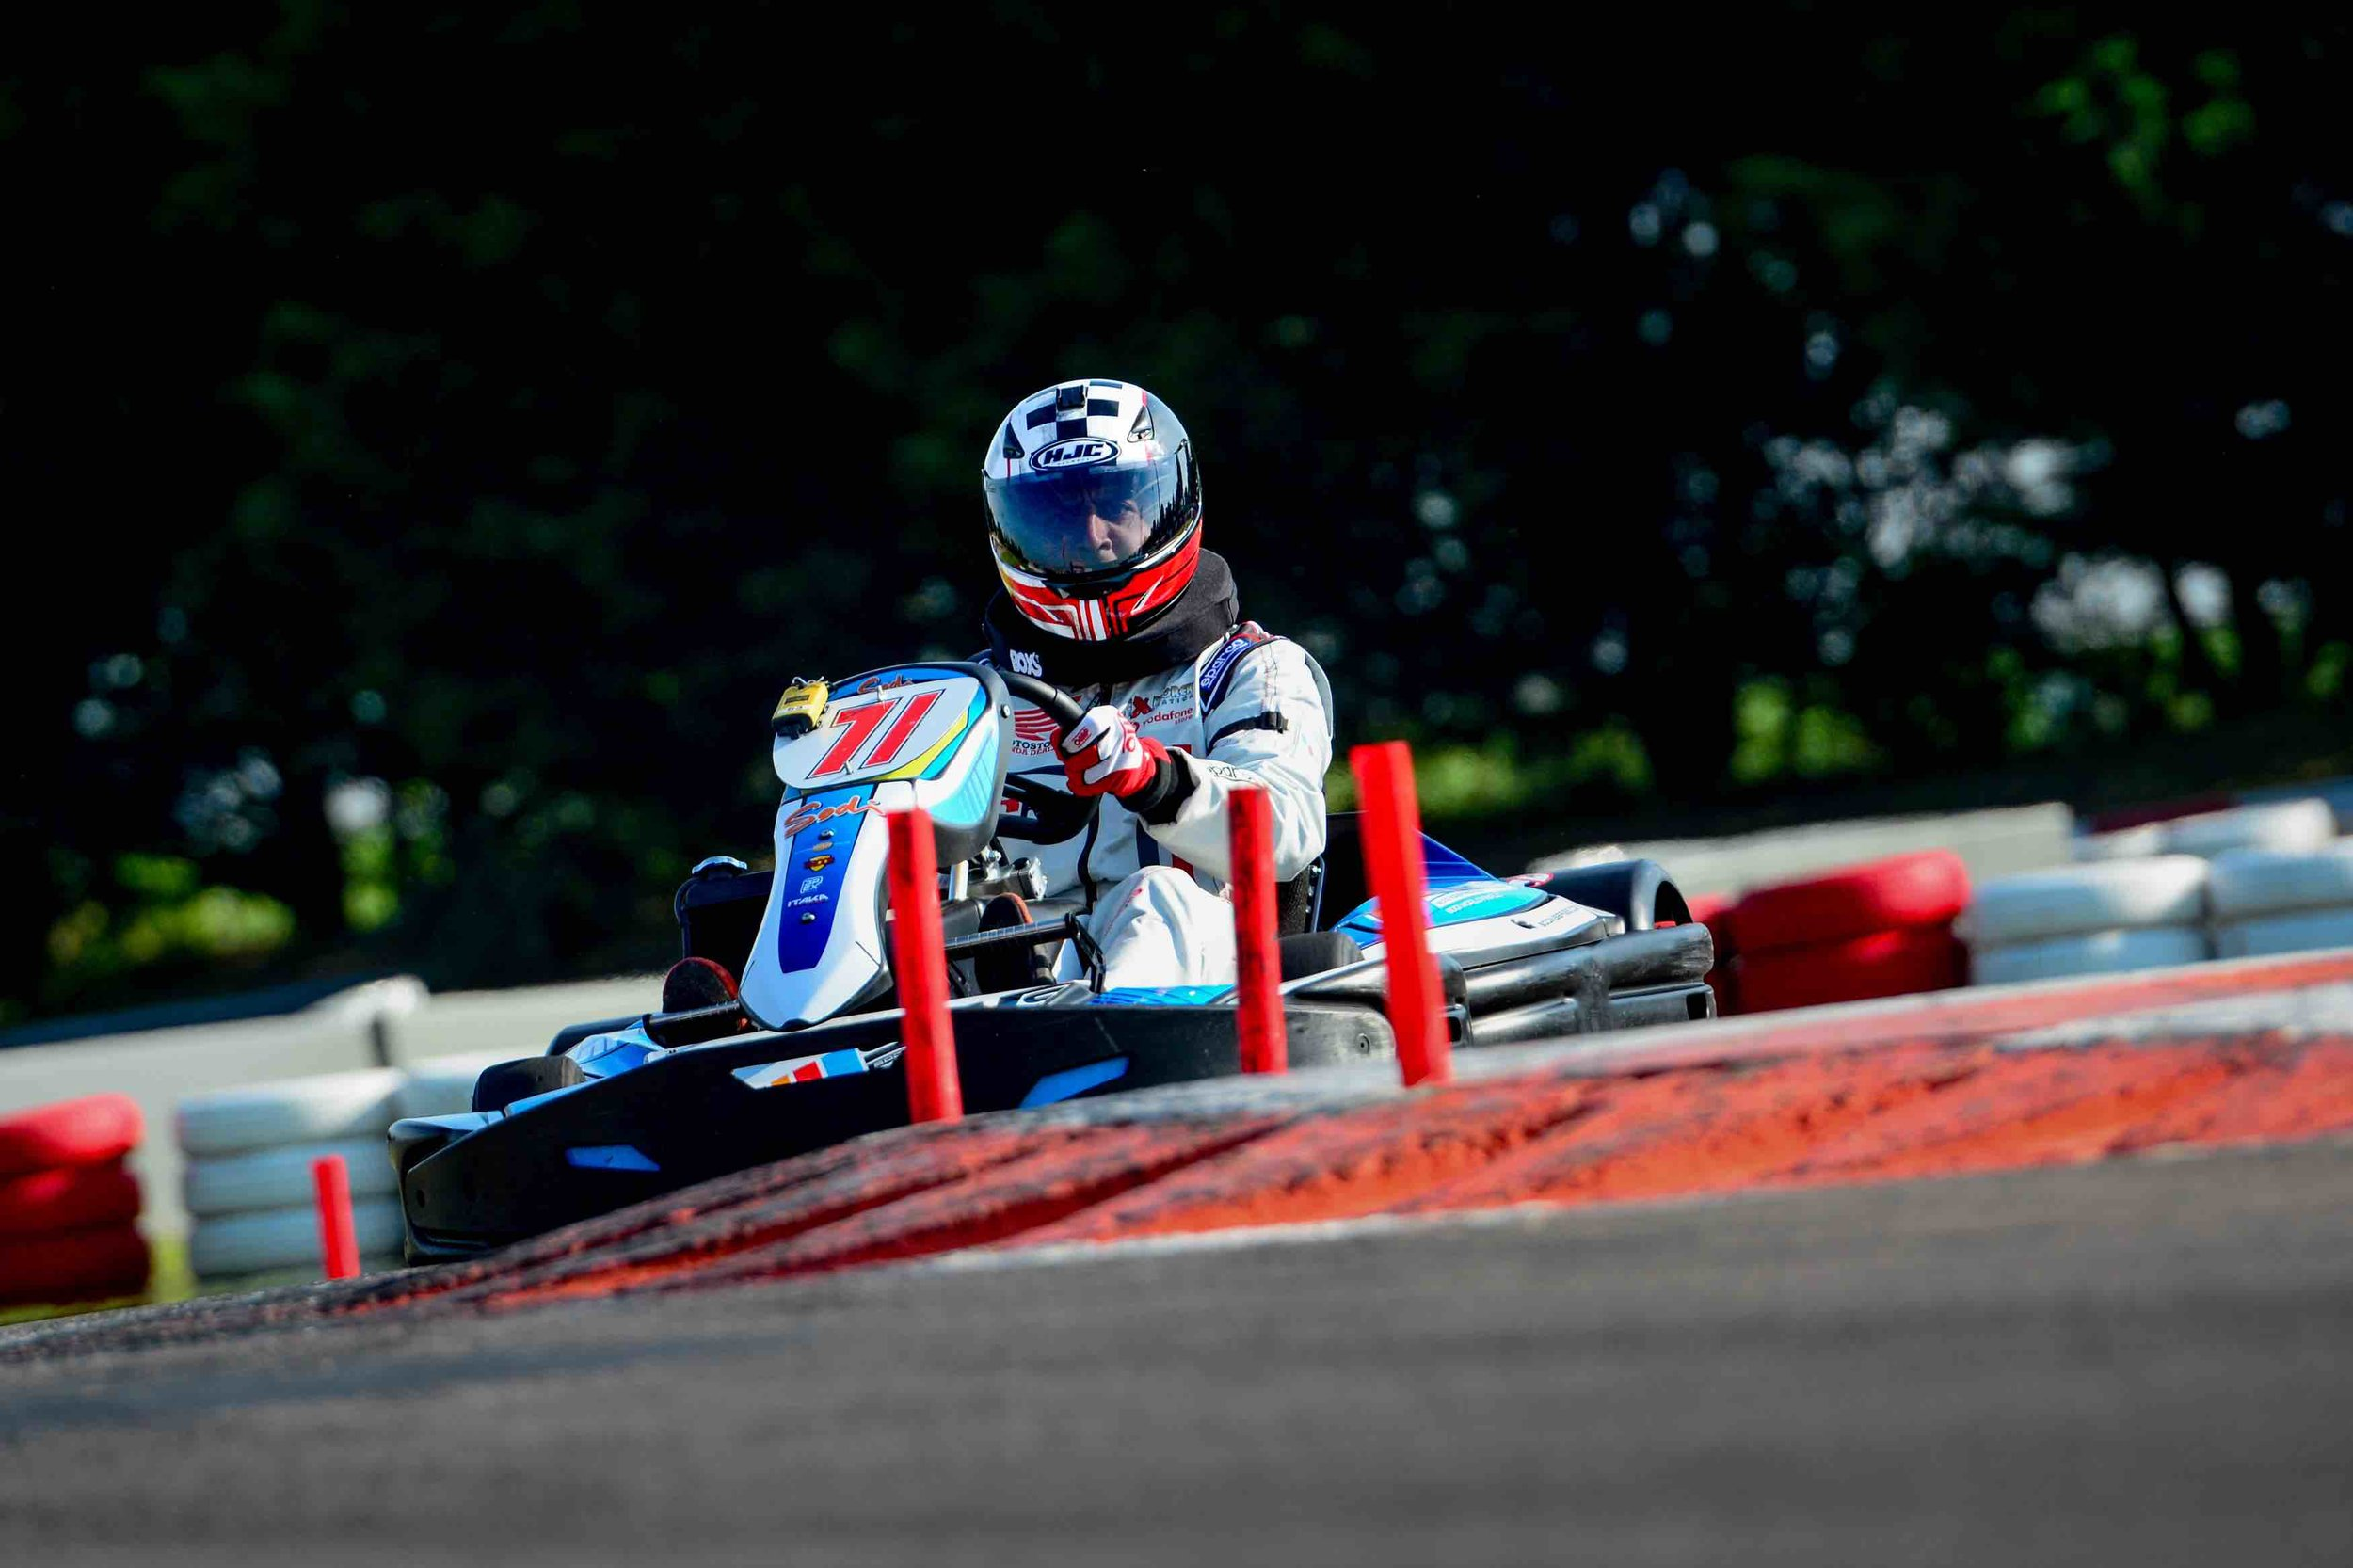 The Sodi RX250 is raced at the SWS World Titles in France.